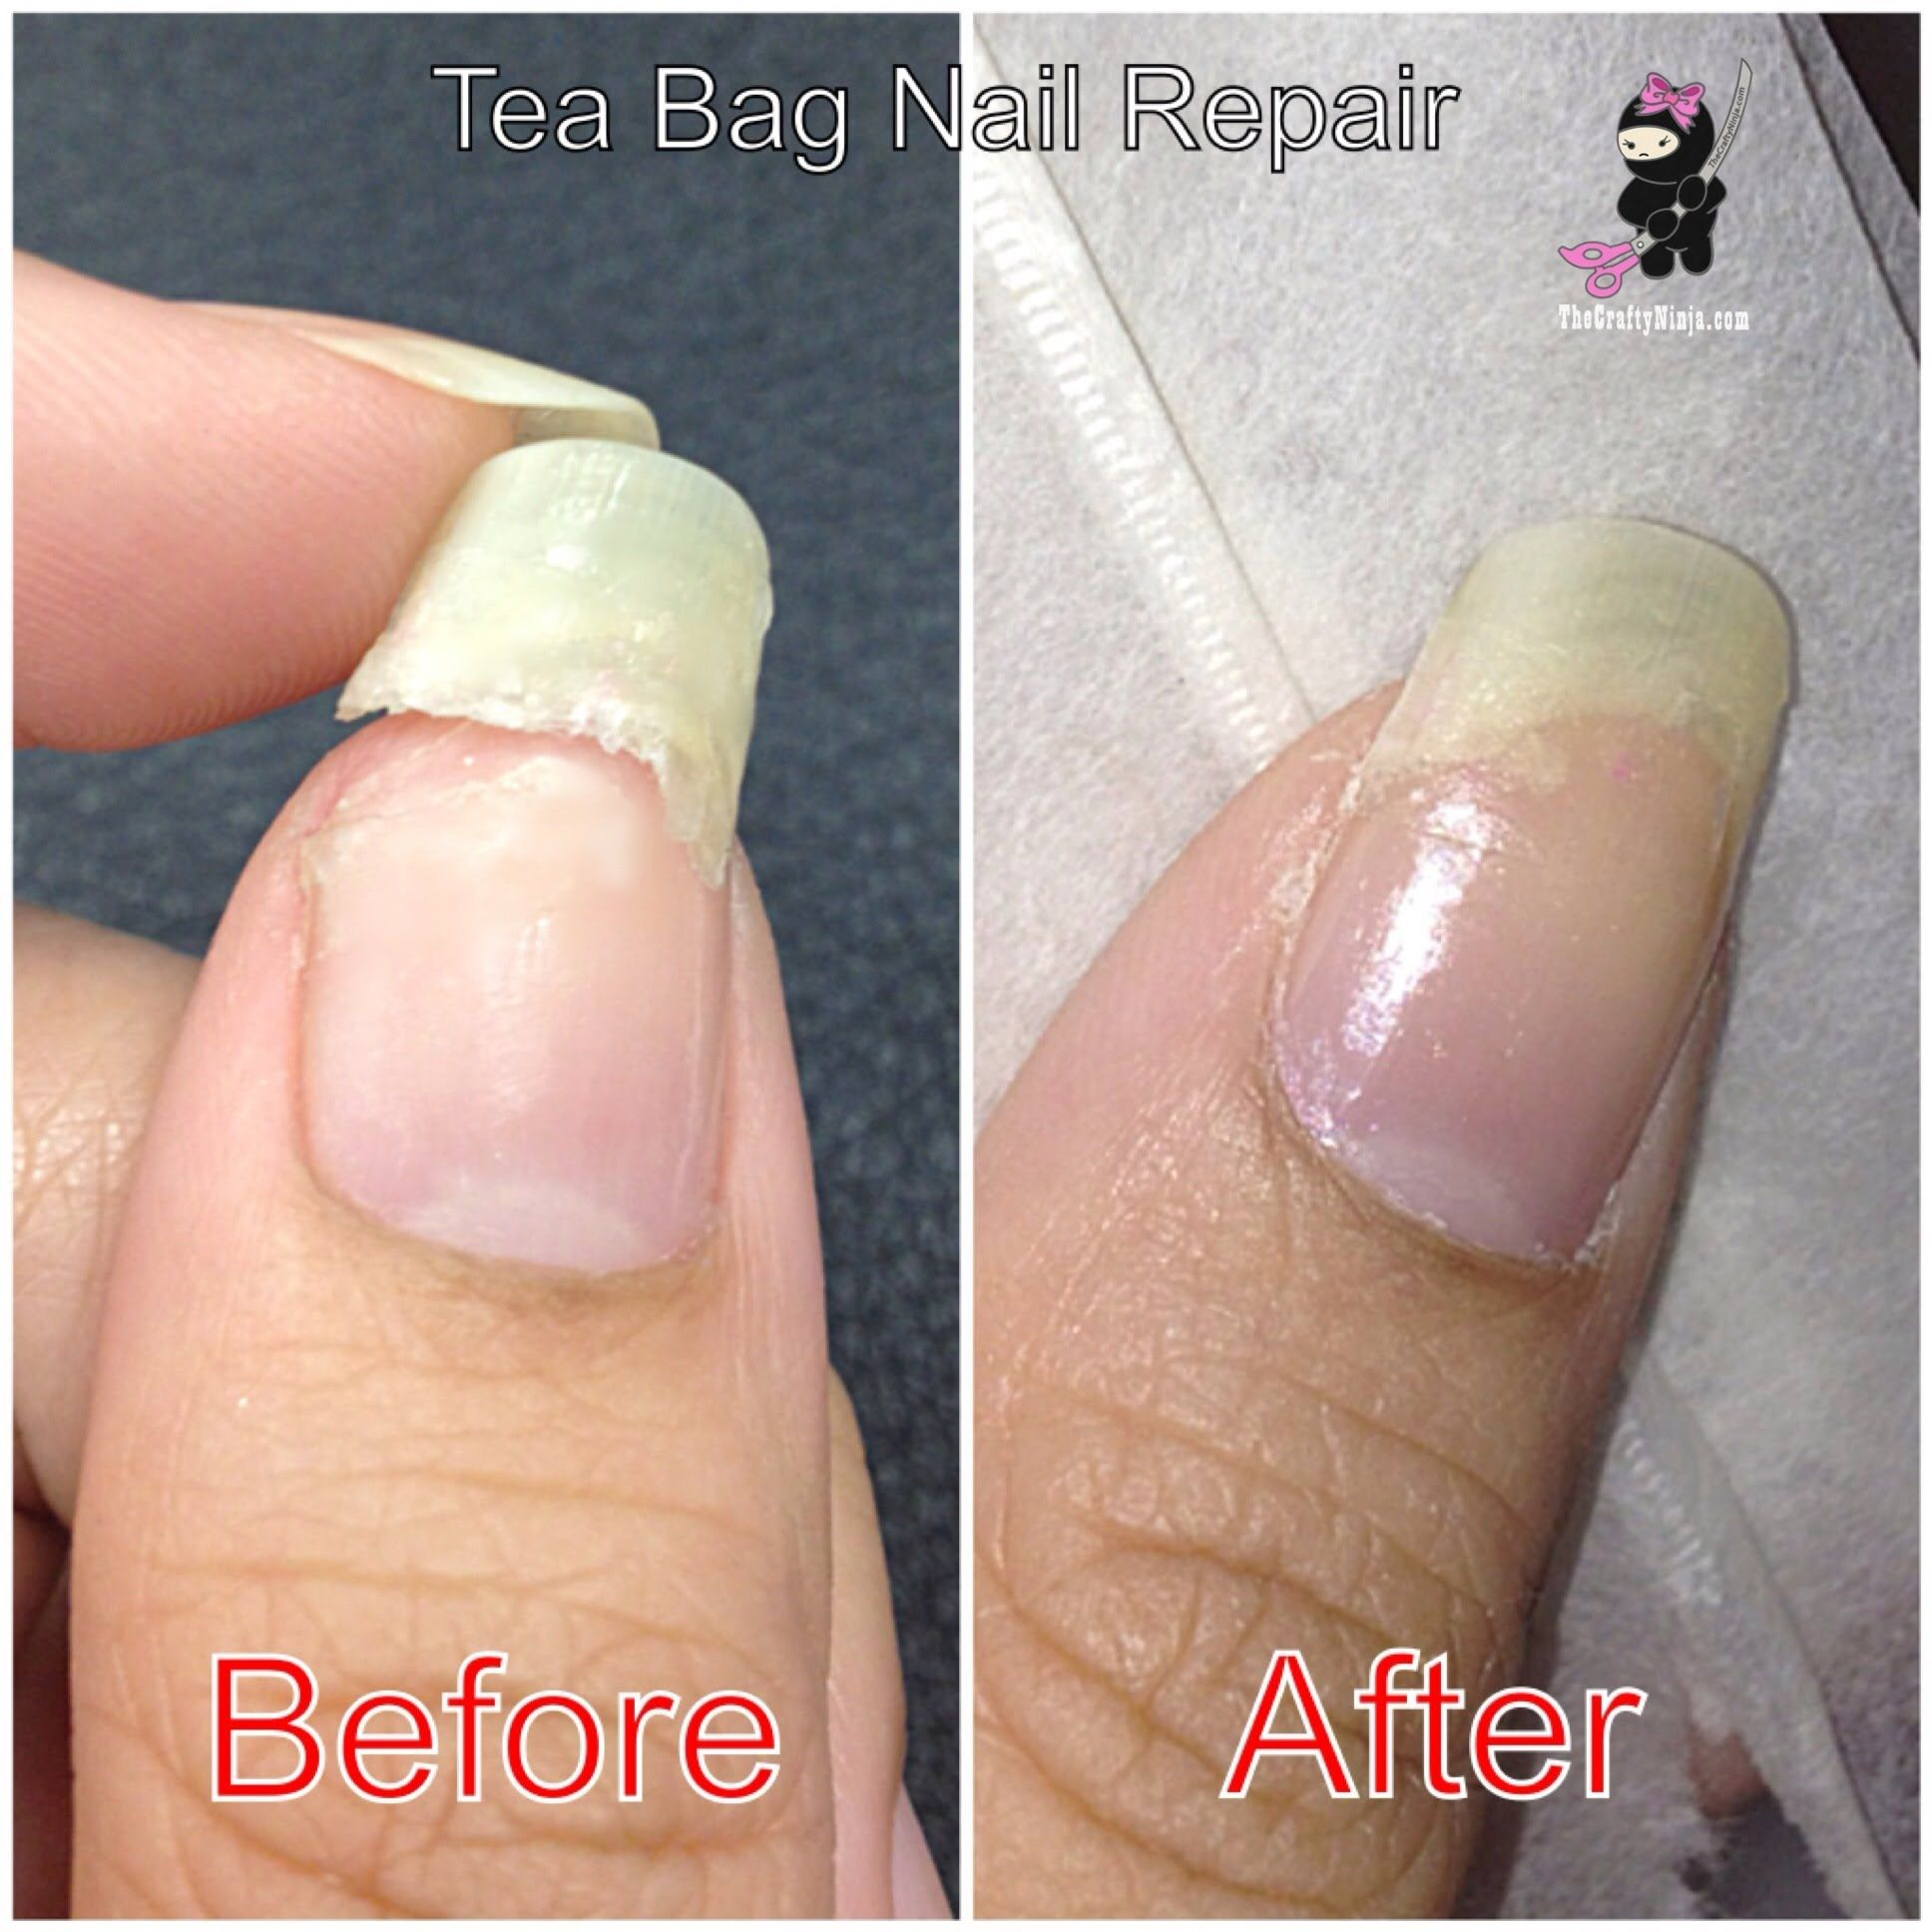 another quick way to repair a broken nail w/tea bag | Nail Care ...